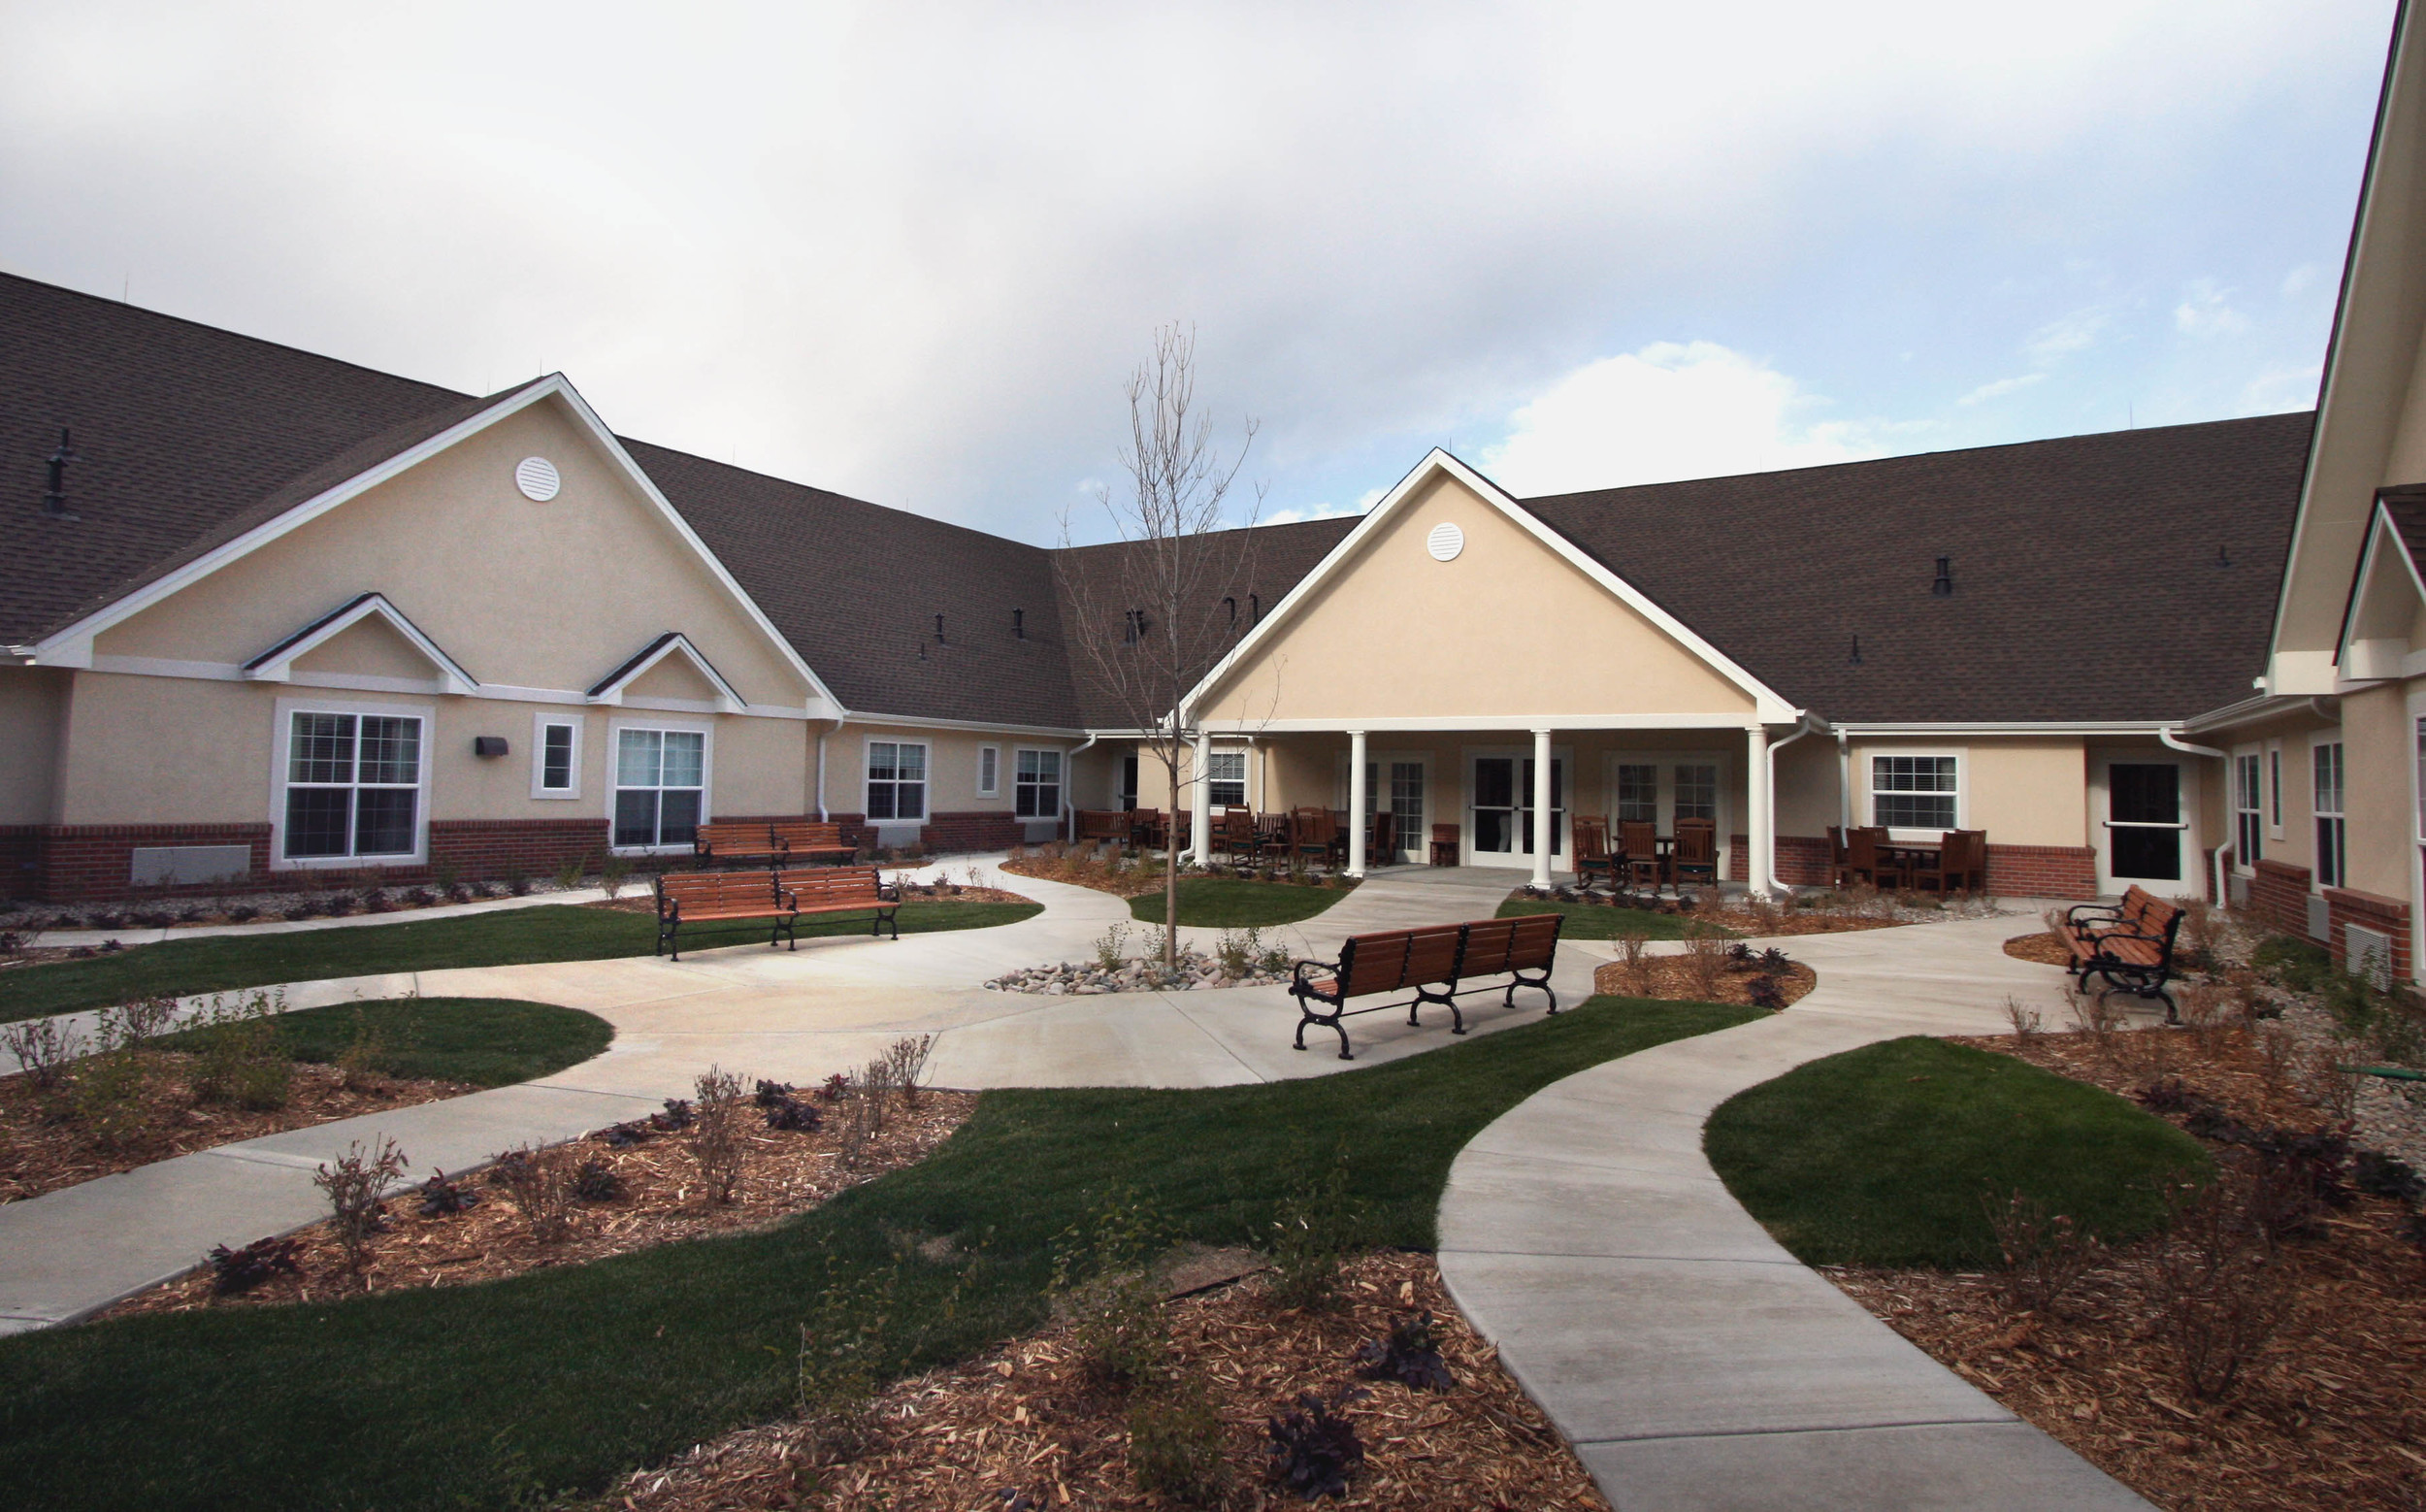 LOYALTON AT THE BROADMOOR-  21,442 SF addition to existing occupied assisted living facility. Building Type VA, wood framed construction. Exterior finishes include brick, stone and stucco.